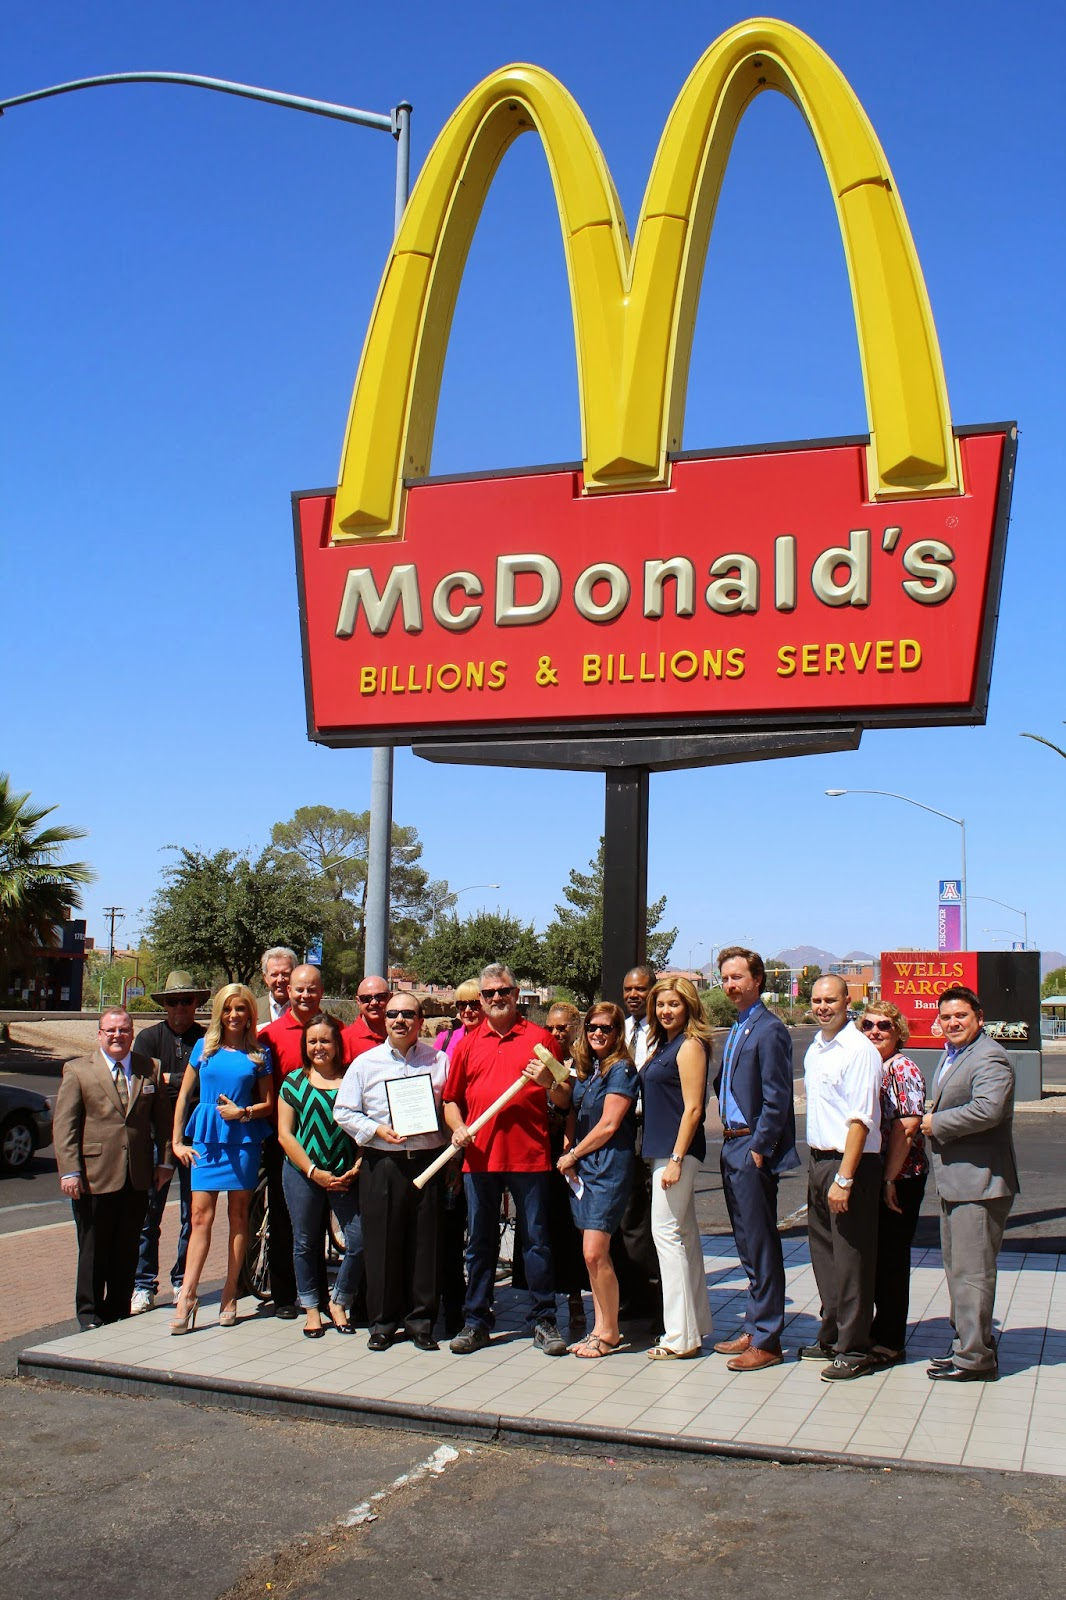 McDonalds - We say goodbye to the oldest remaining McDonald's in the Region making way for a great new McDonald's Restaurant with expanded wi-fi and power ports in the lobby for our U of A customers, double drive thru for increased capacity and speed of service and contemporary lobby décor and seating.   Restaurant location: 1711 E. Speedway Boulevard